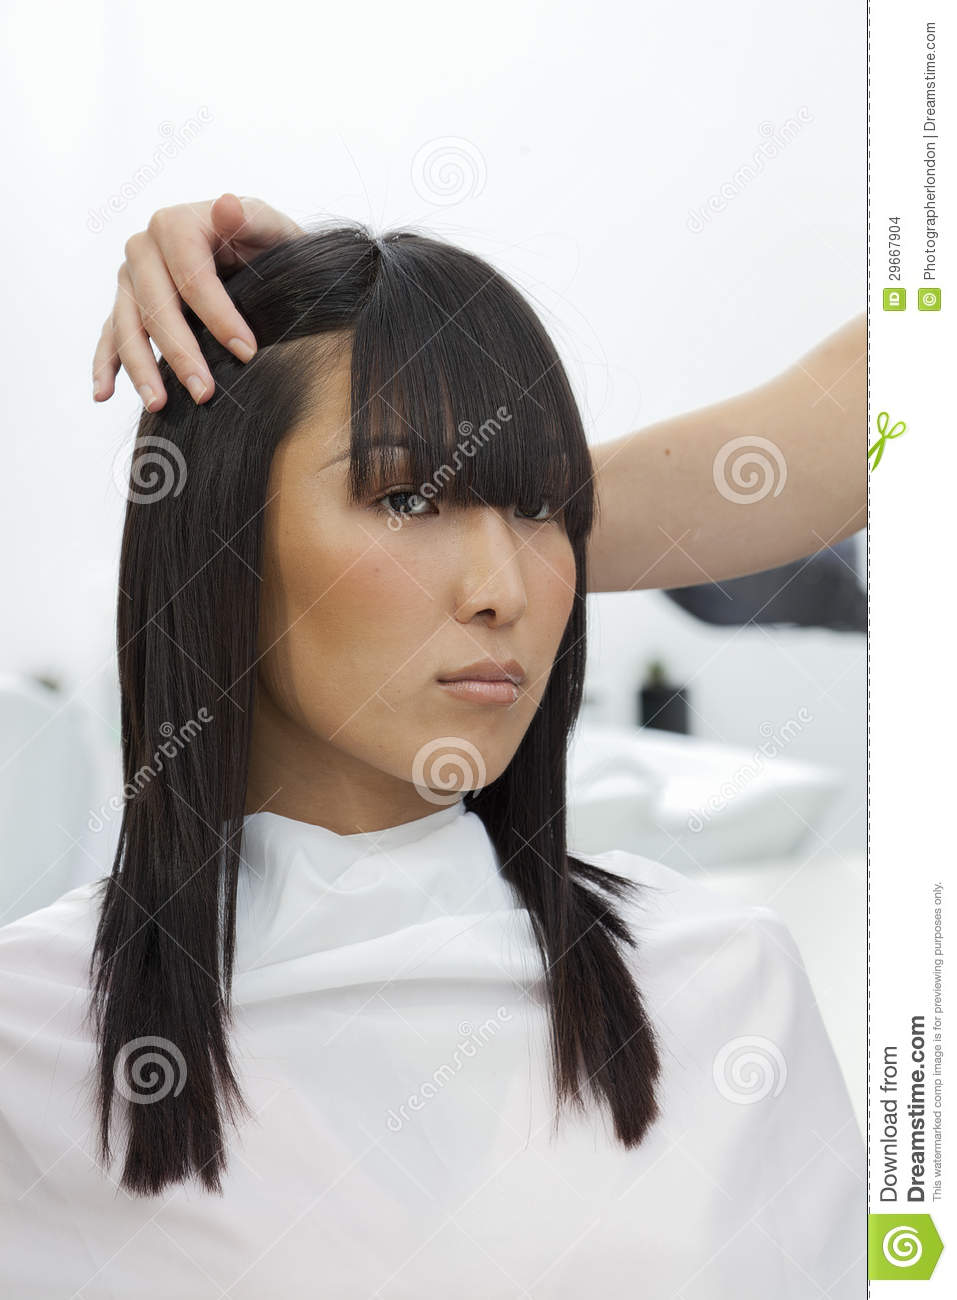 Asian Woman At Beauty Salon Stock Images - Image: 29667904